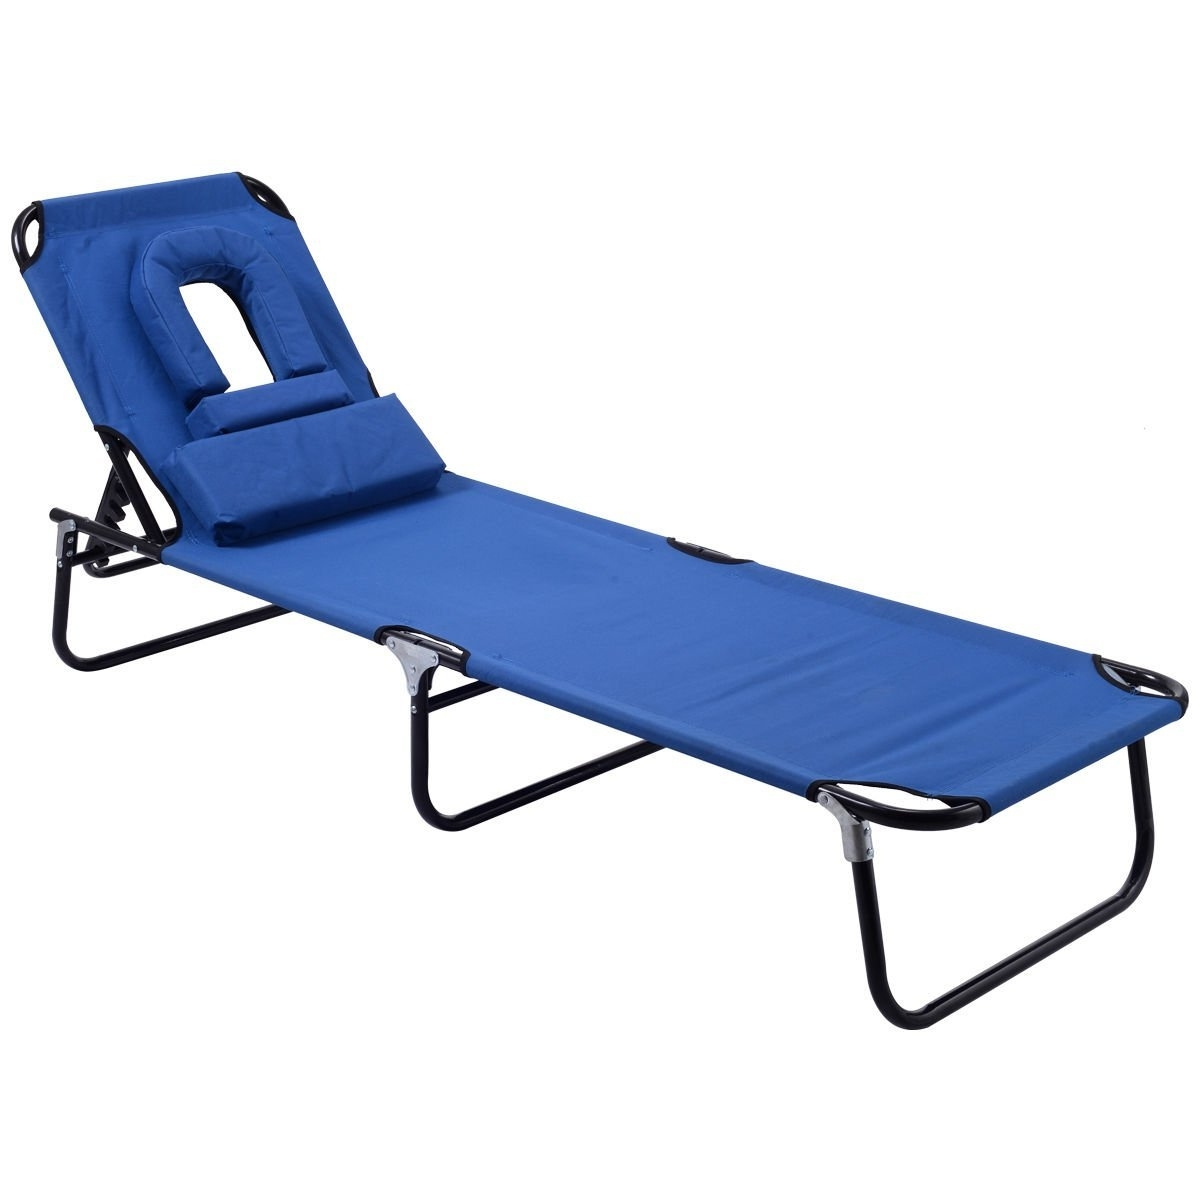 Widely Used Amazon: Goplus Folding Chaise Lounge Chair Bed Outdoor Patio Pertaining To Folding Chaise Lounge Chairs (View 15 of 15)